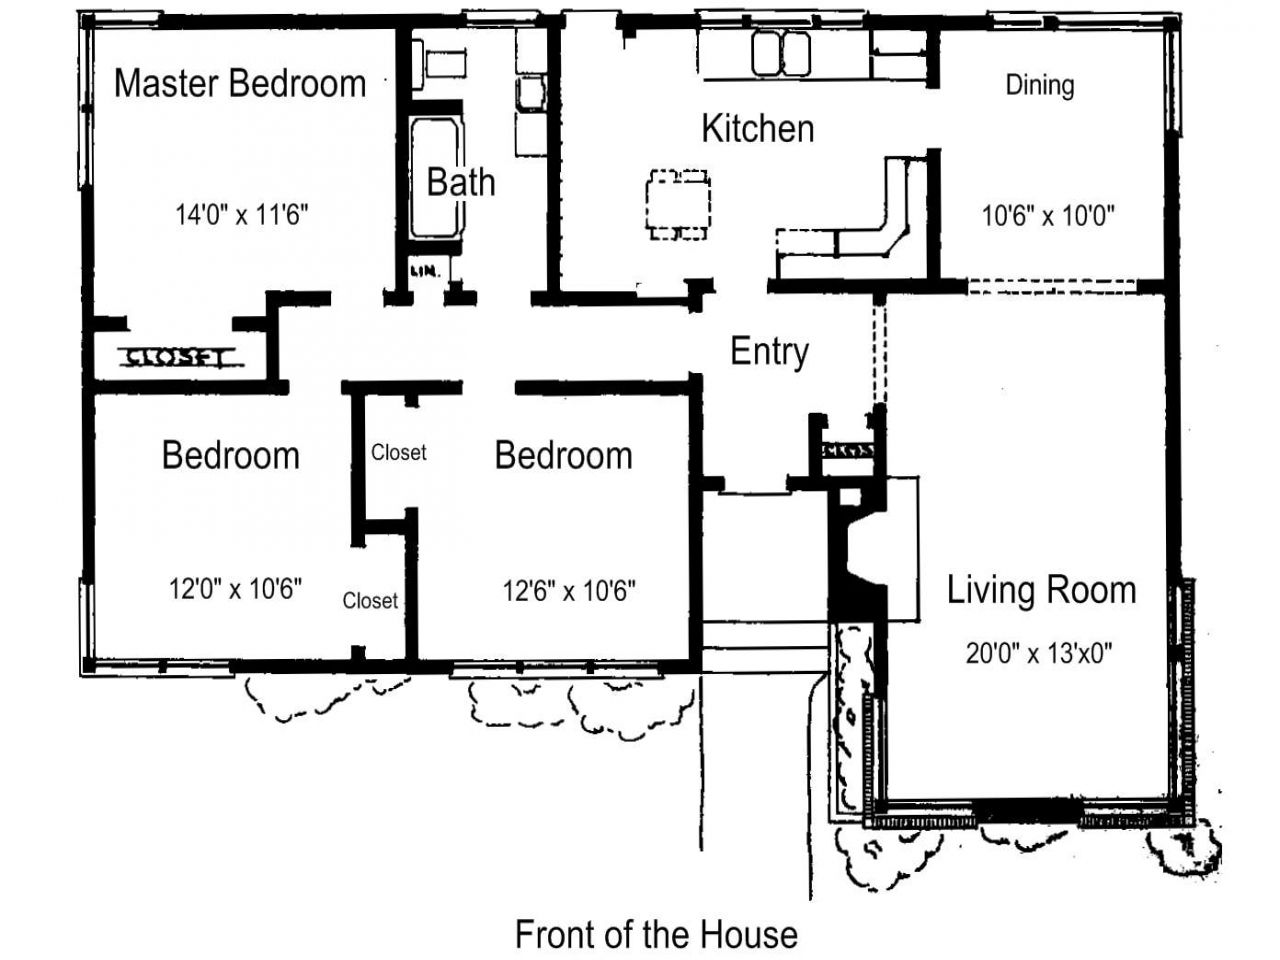 3 Bedroom House Plans In Kenya Small House Plans Free Simple